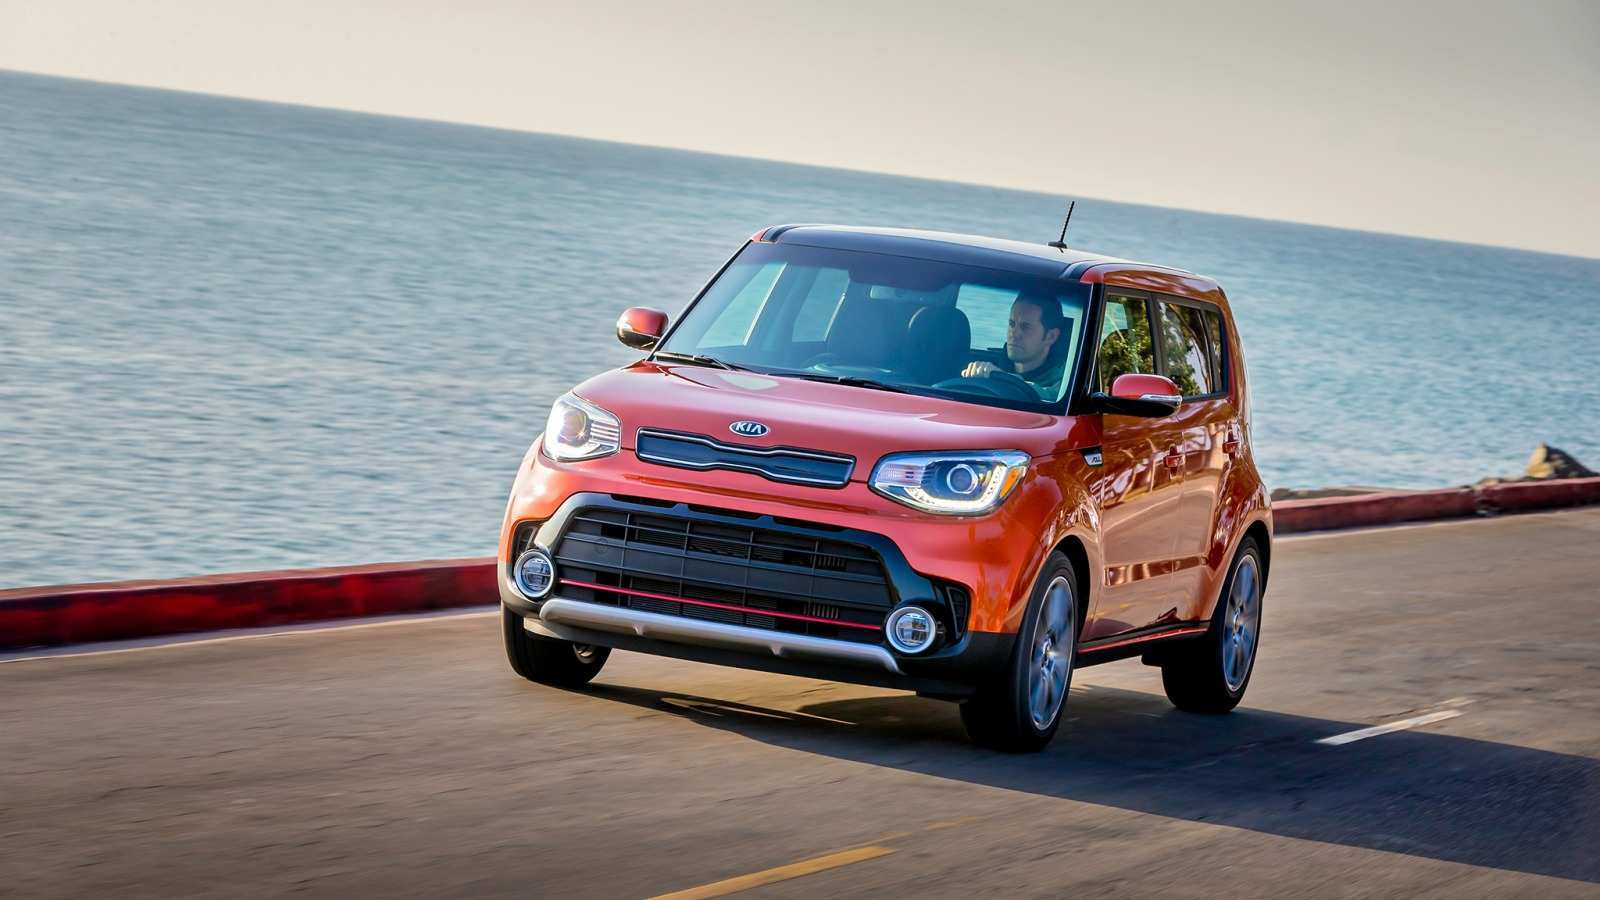 86 The Best 2019 All Kia Soul Awd Concept